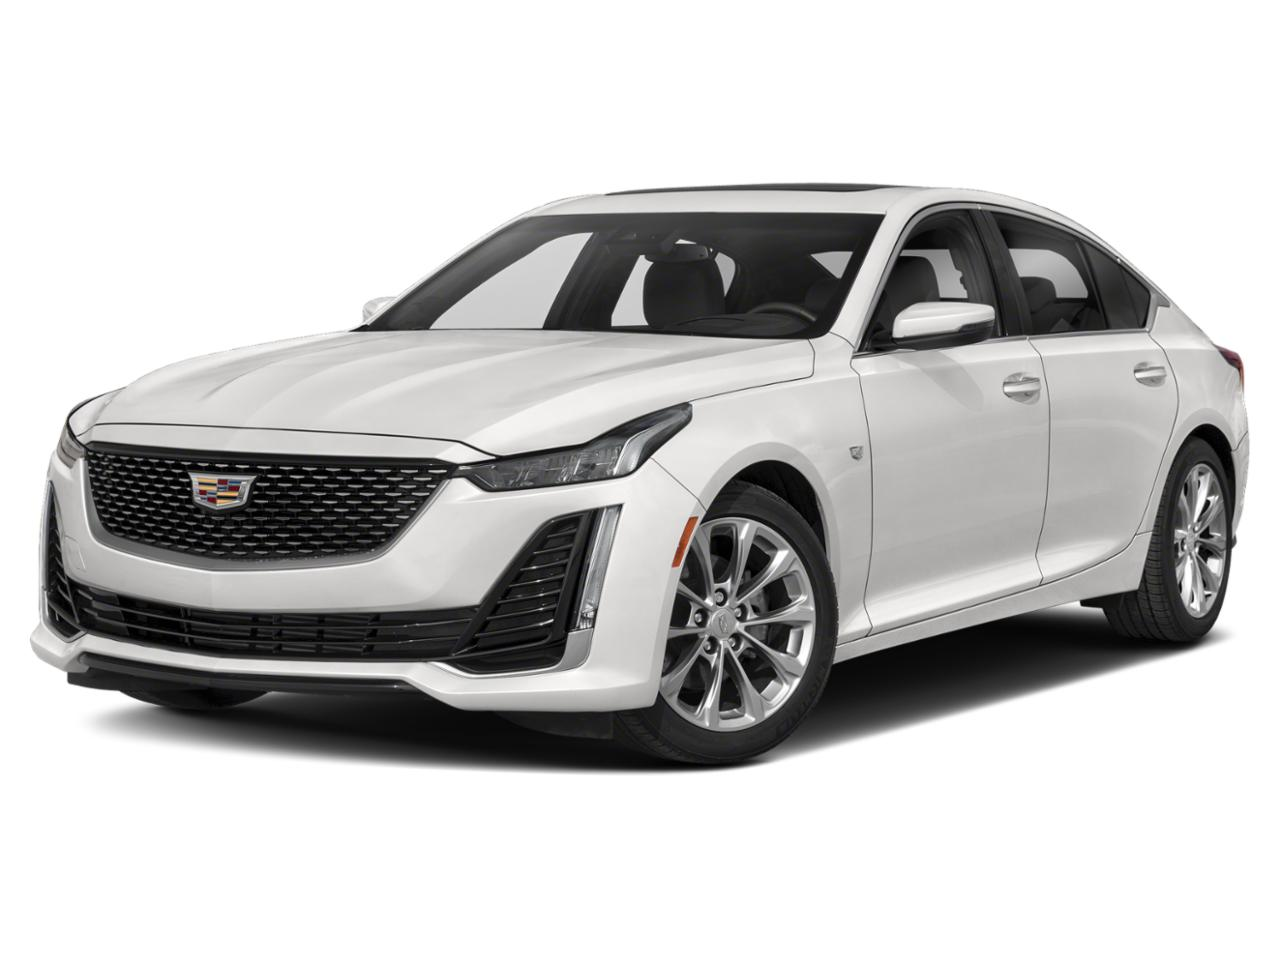 2020 Cadillac CT5 Vehicle Photo in FRIENDSWOOD, TX 77546-2722